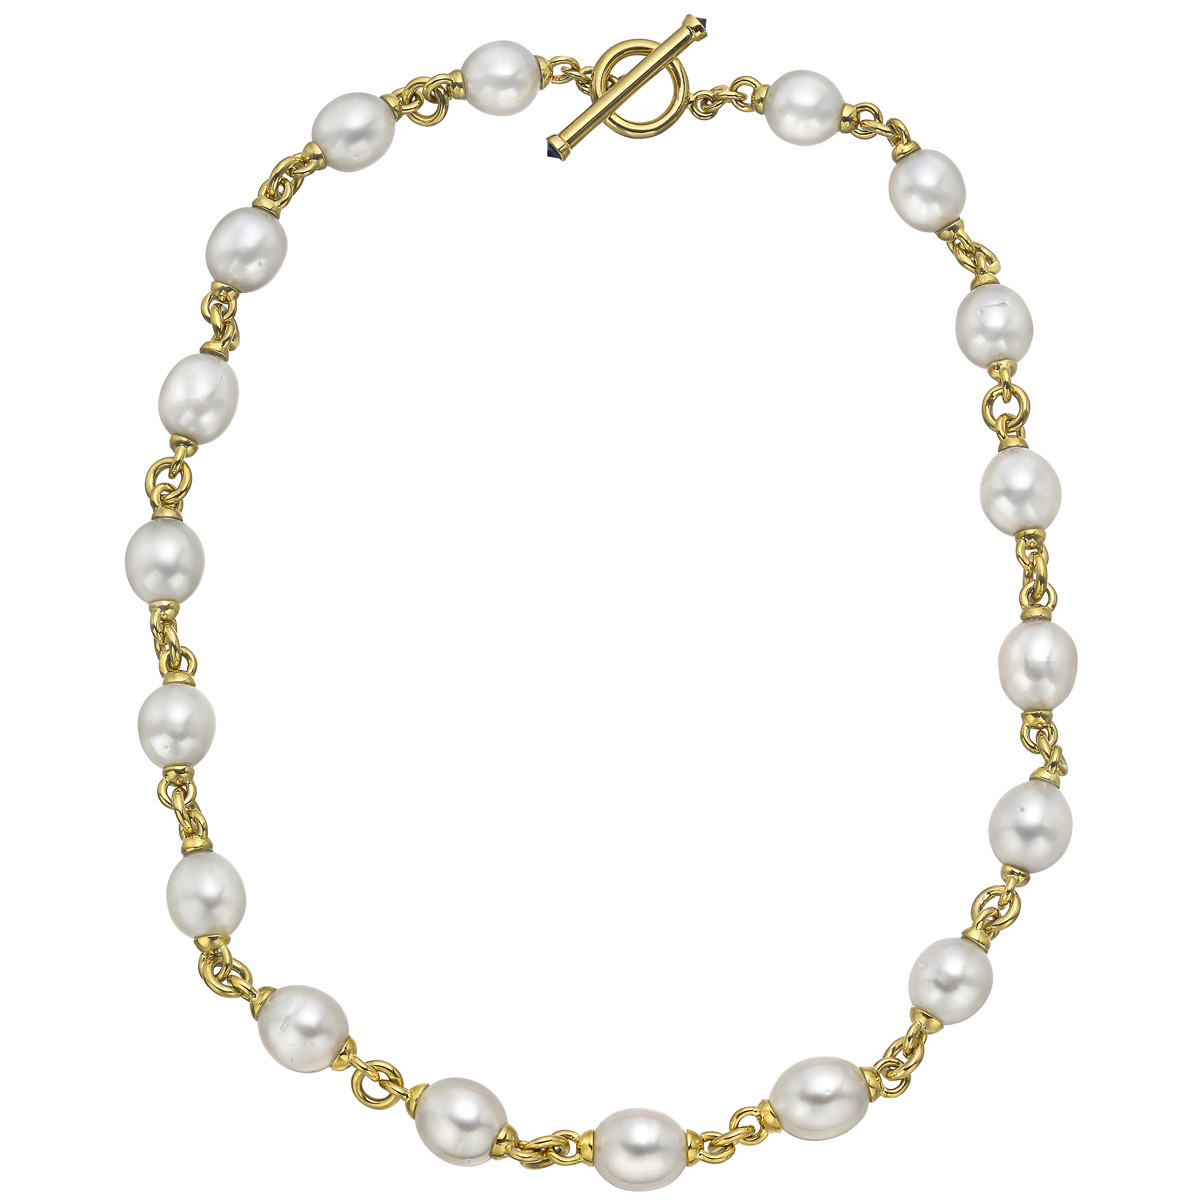 18k Yellow Gold & Pearl Link Chain Necklace